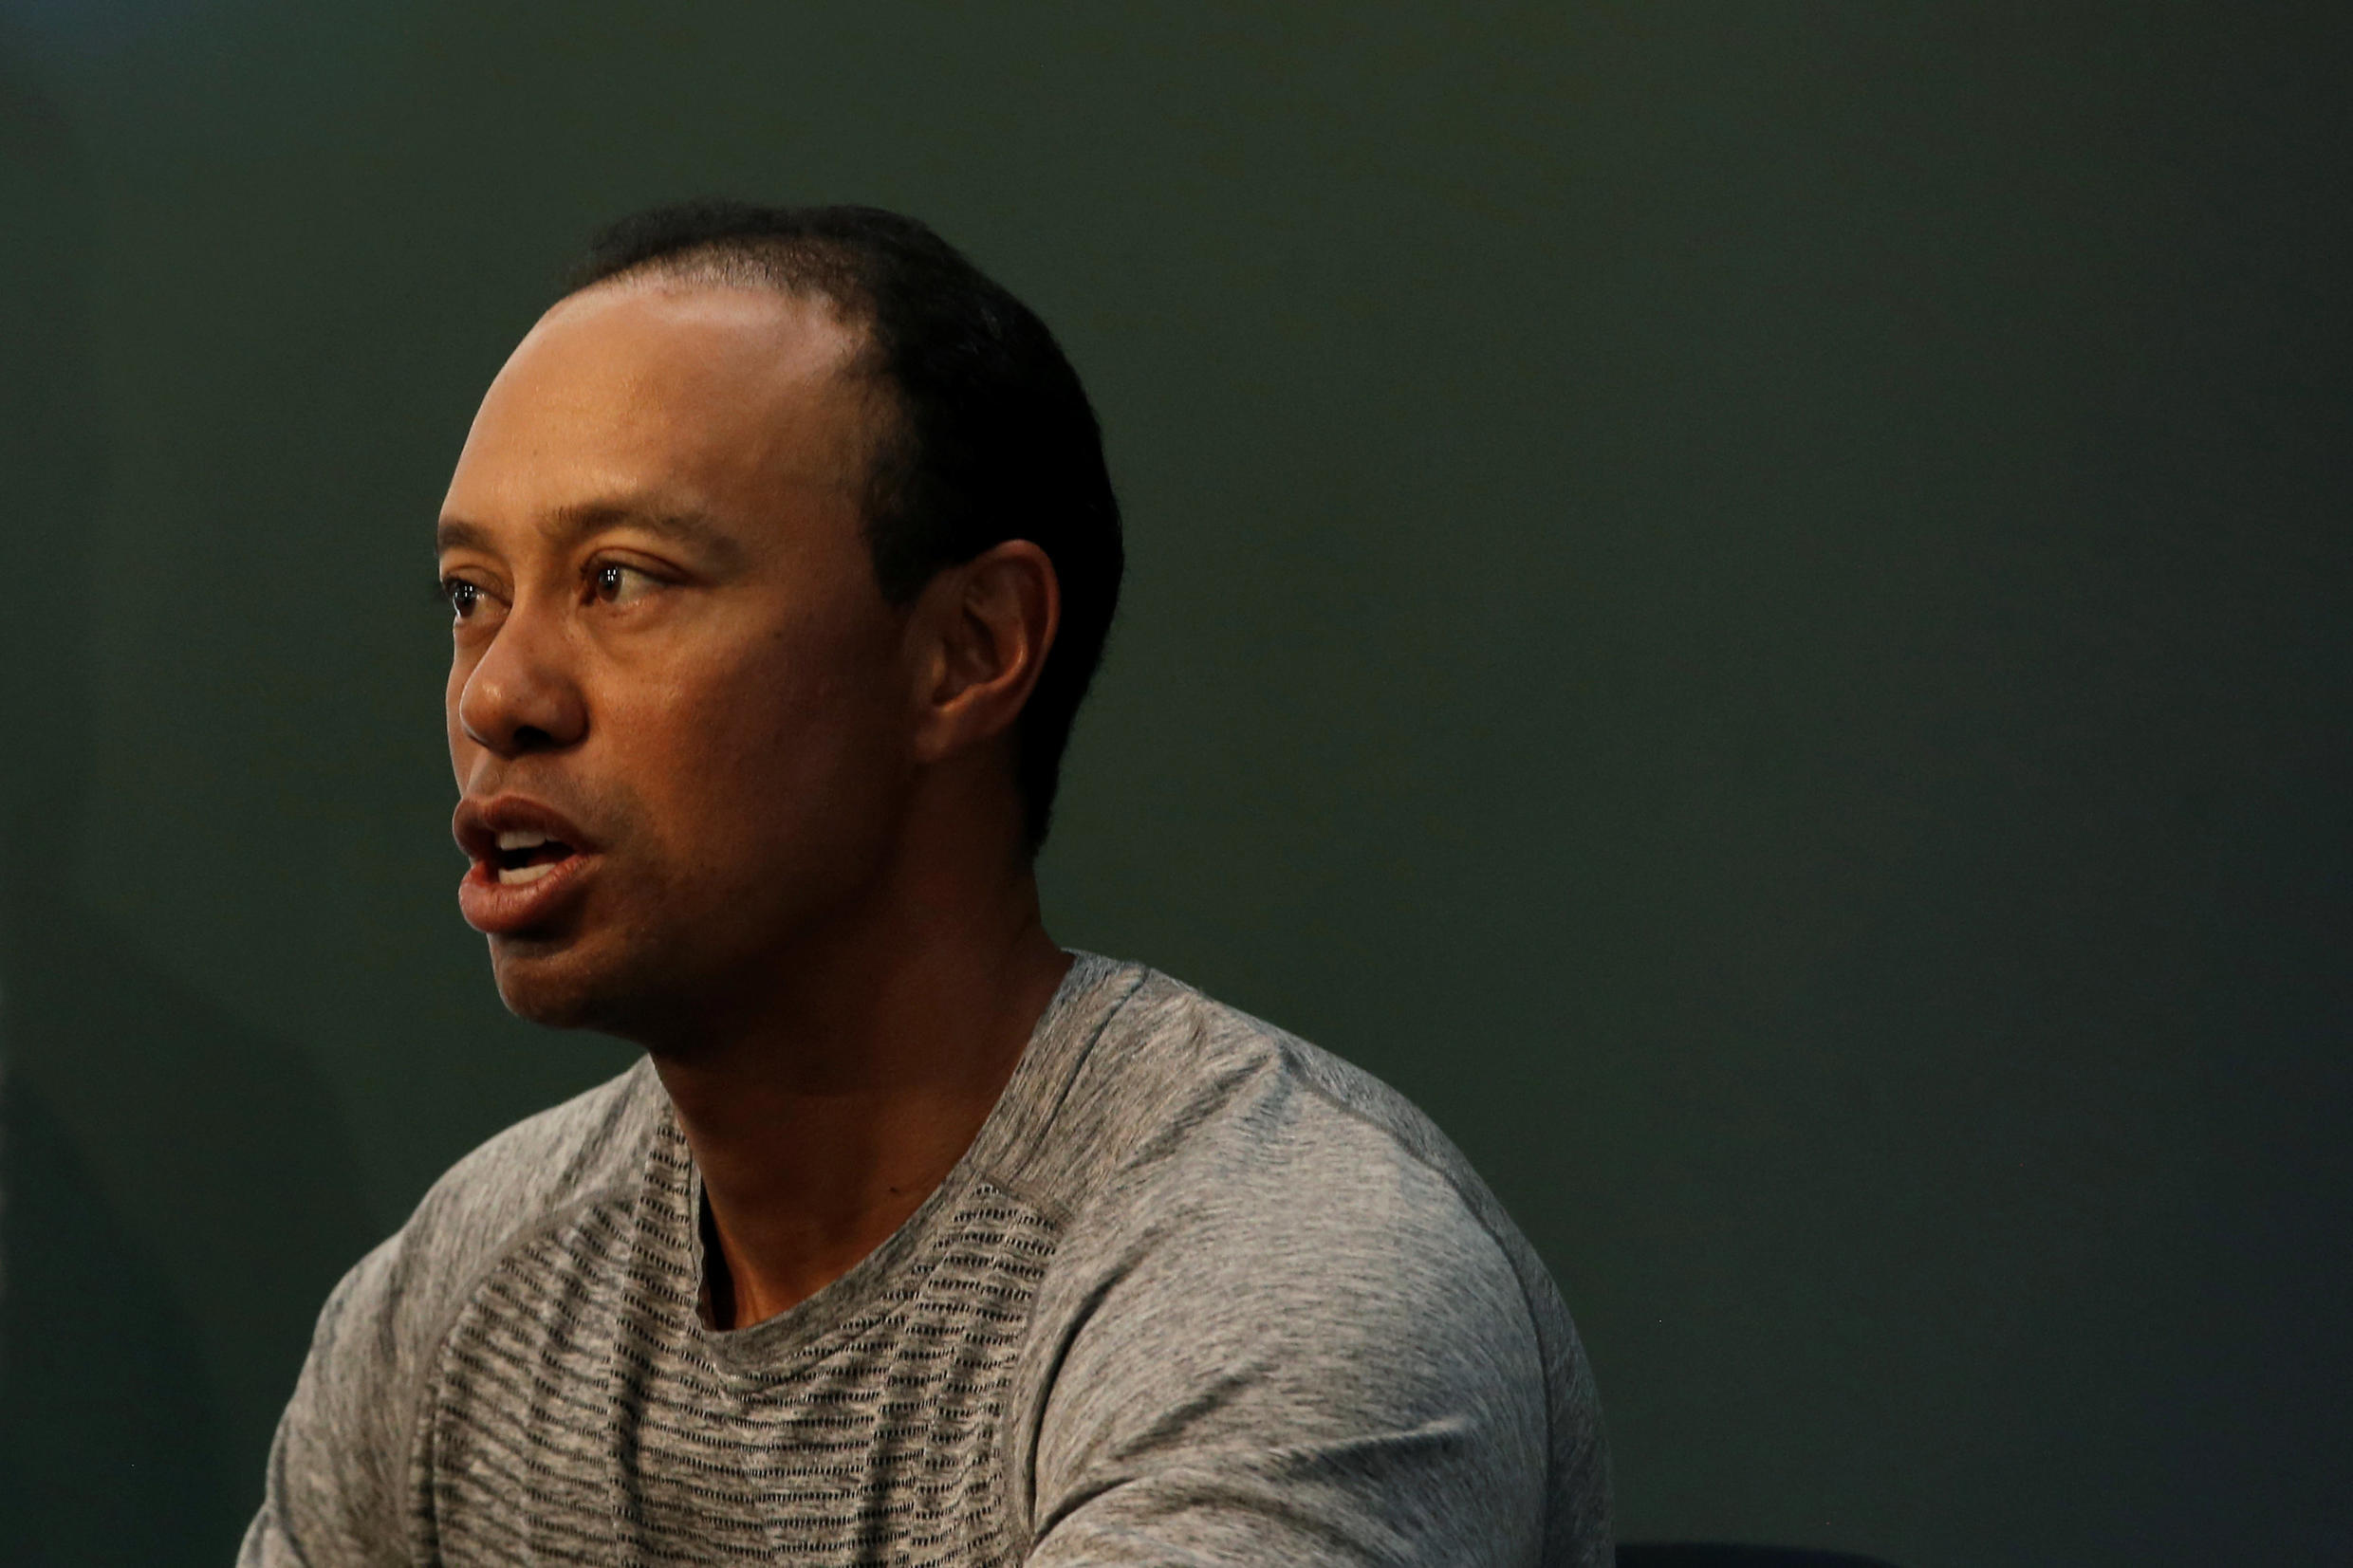 Tiger Woods, who has won 14 major titles, has ruled himself out of the first major event of the year.